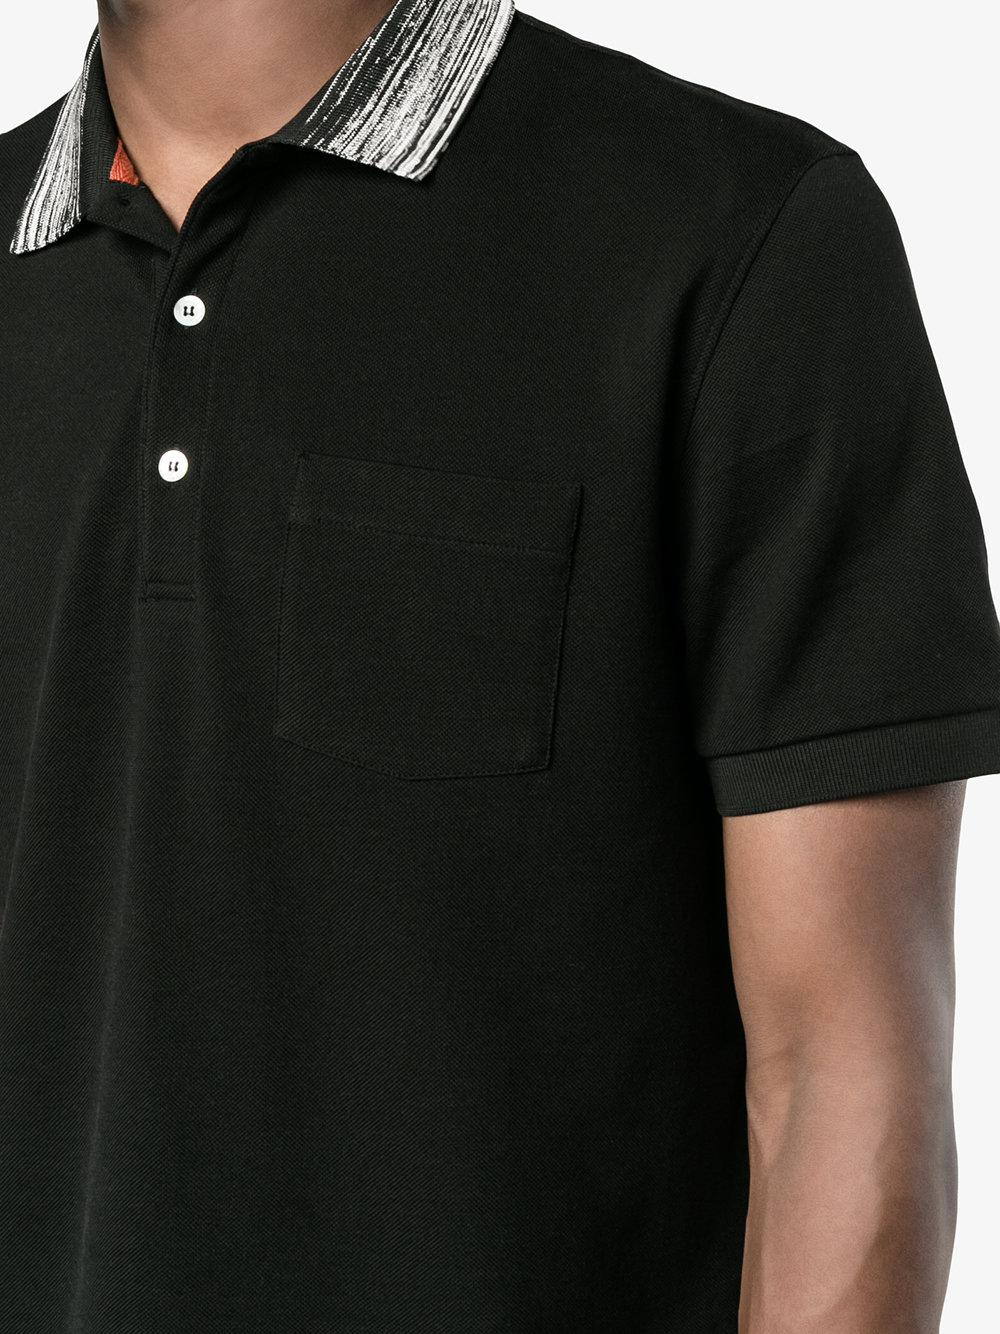 dd1a0499 Short Sleeve Polo Shirts With Breast Pocket